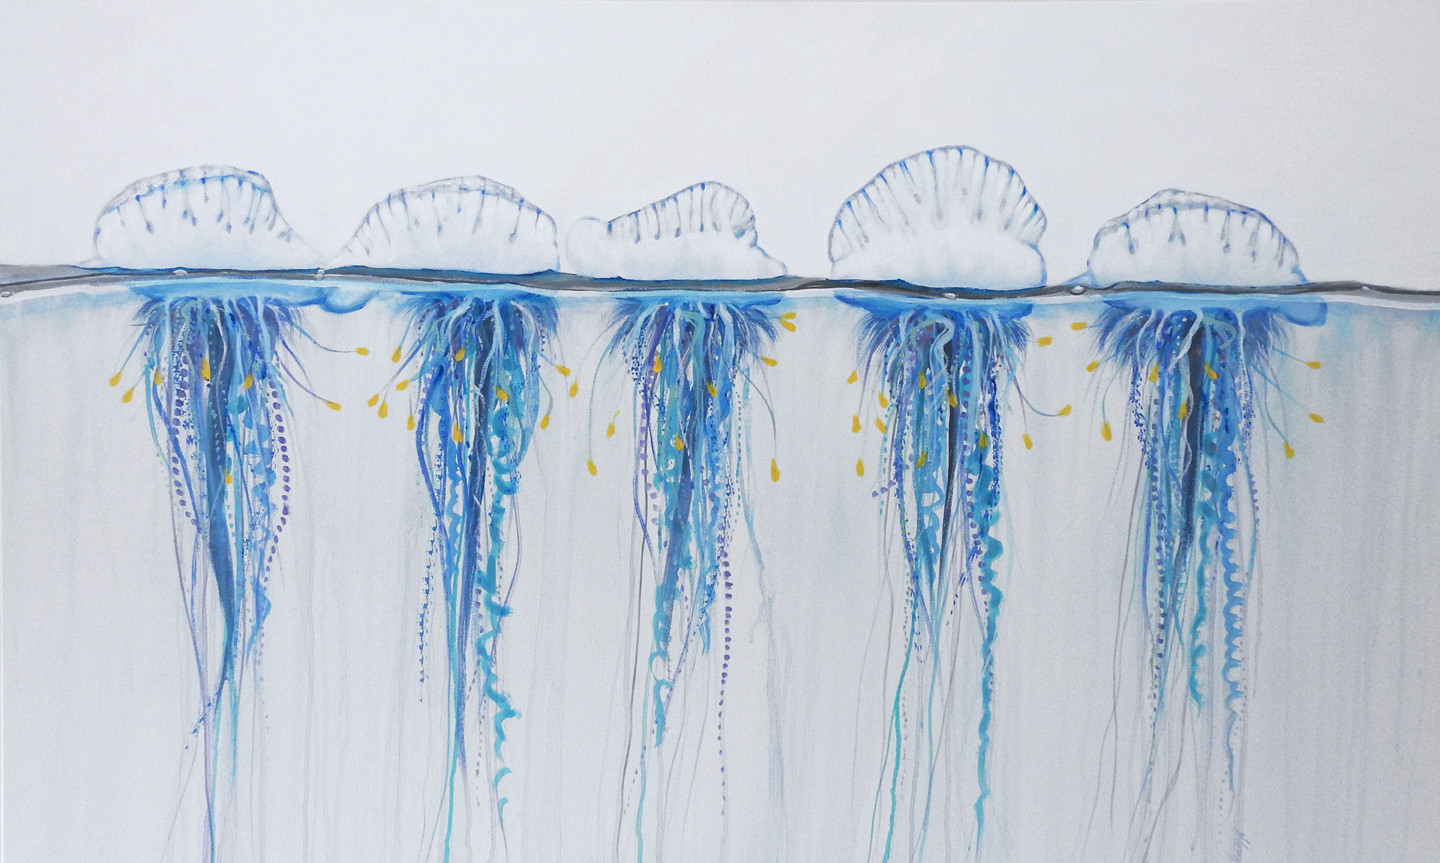 bluebottle painting sold artwork